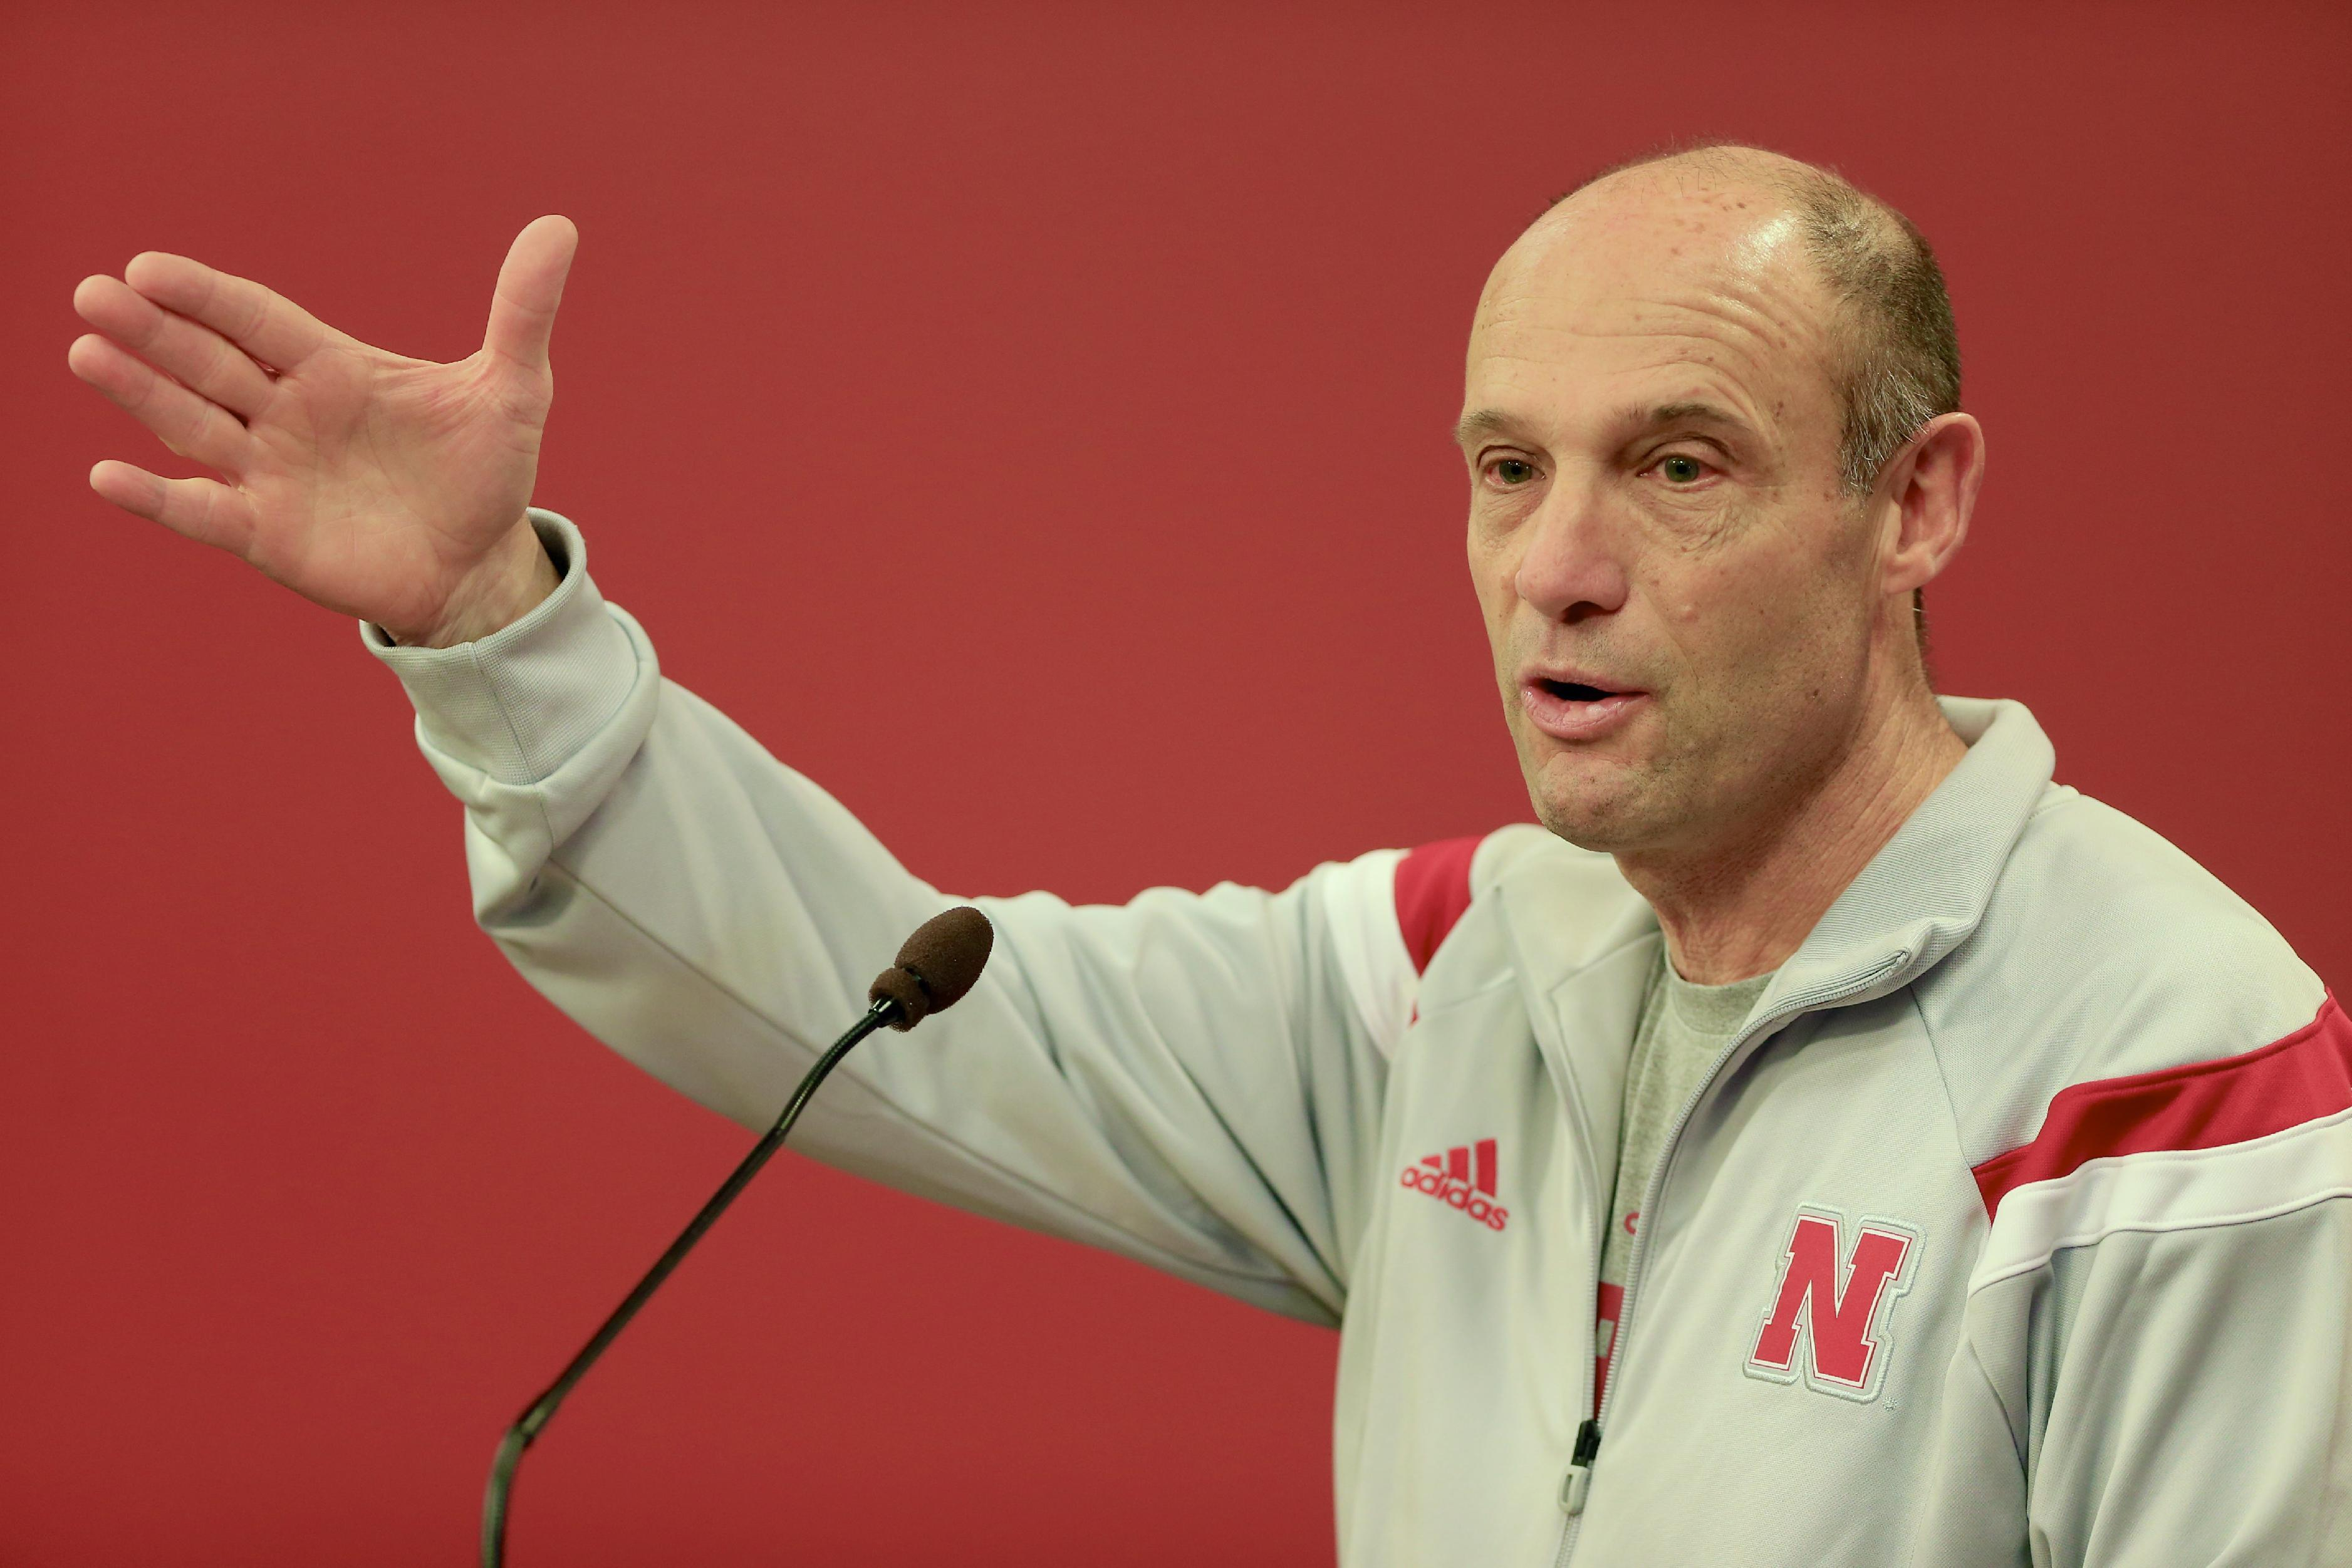 Nebraska QB told to be ready for more passing, less running